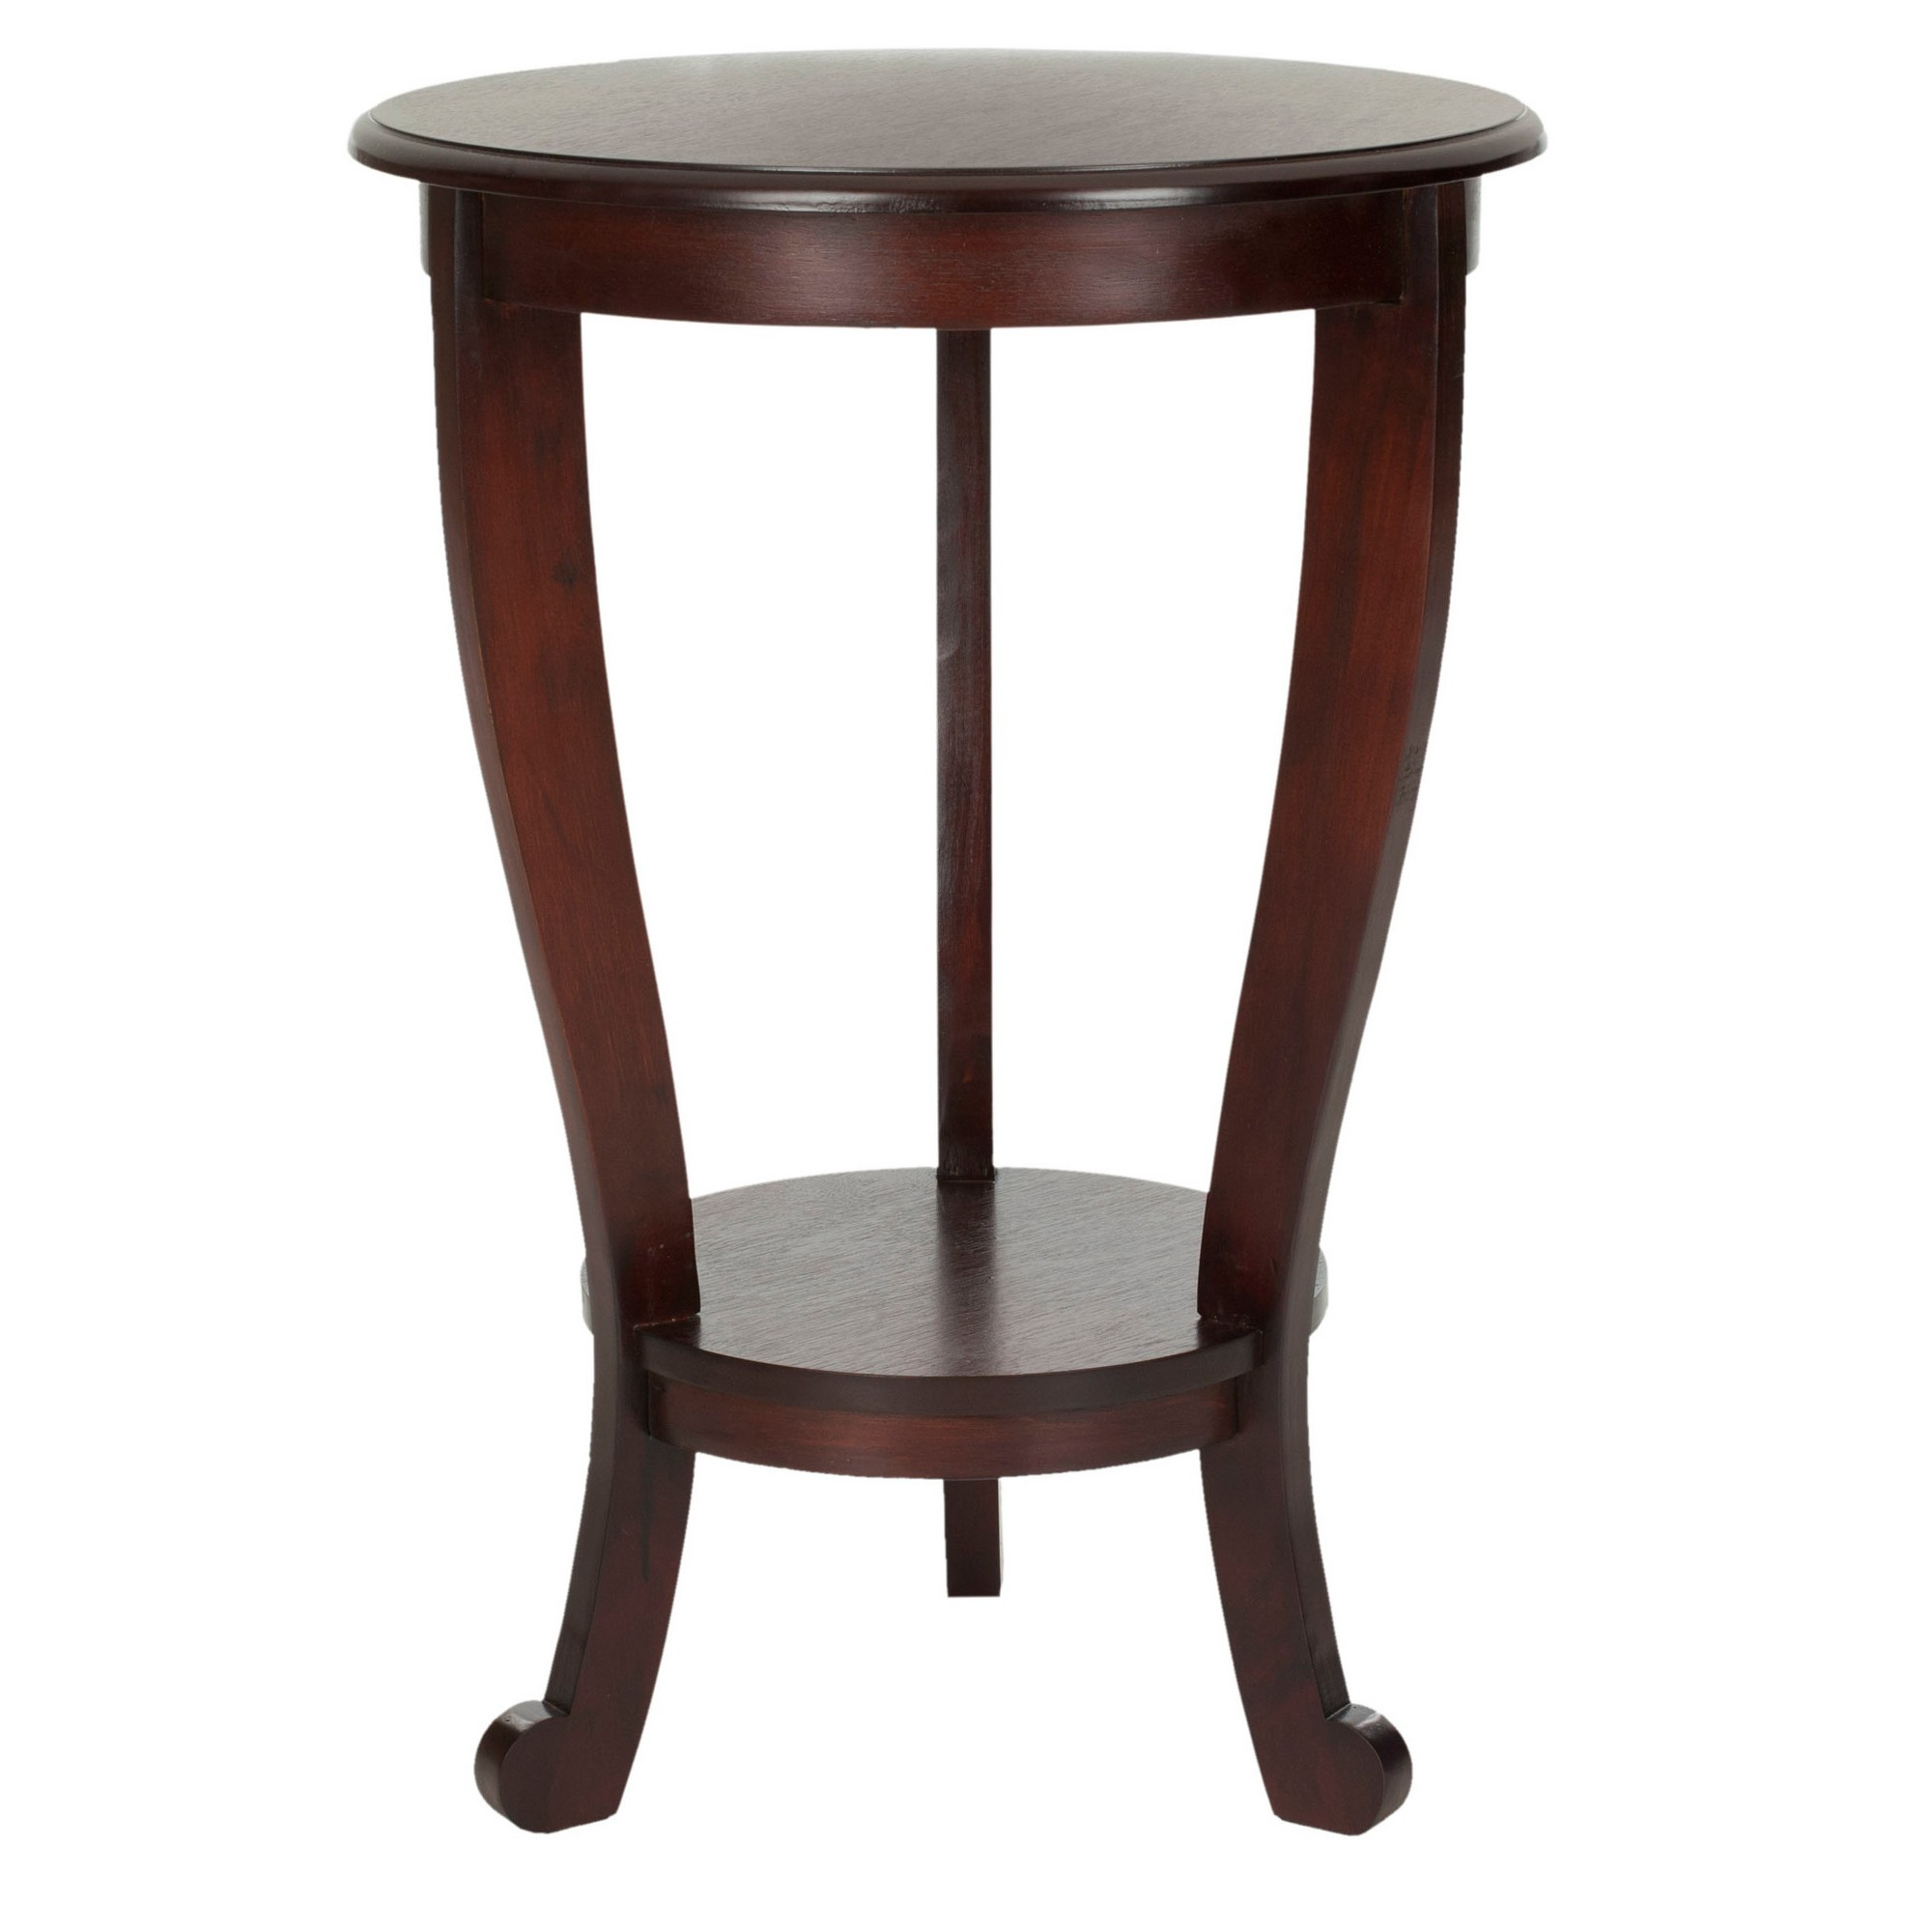 bette accent table cherry red safavieh products wood rattan outdoor furniture clearance patio covers large round wall clock ethan allen leather sofa living room tables small